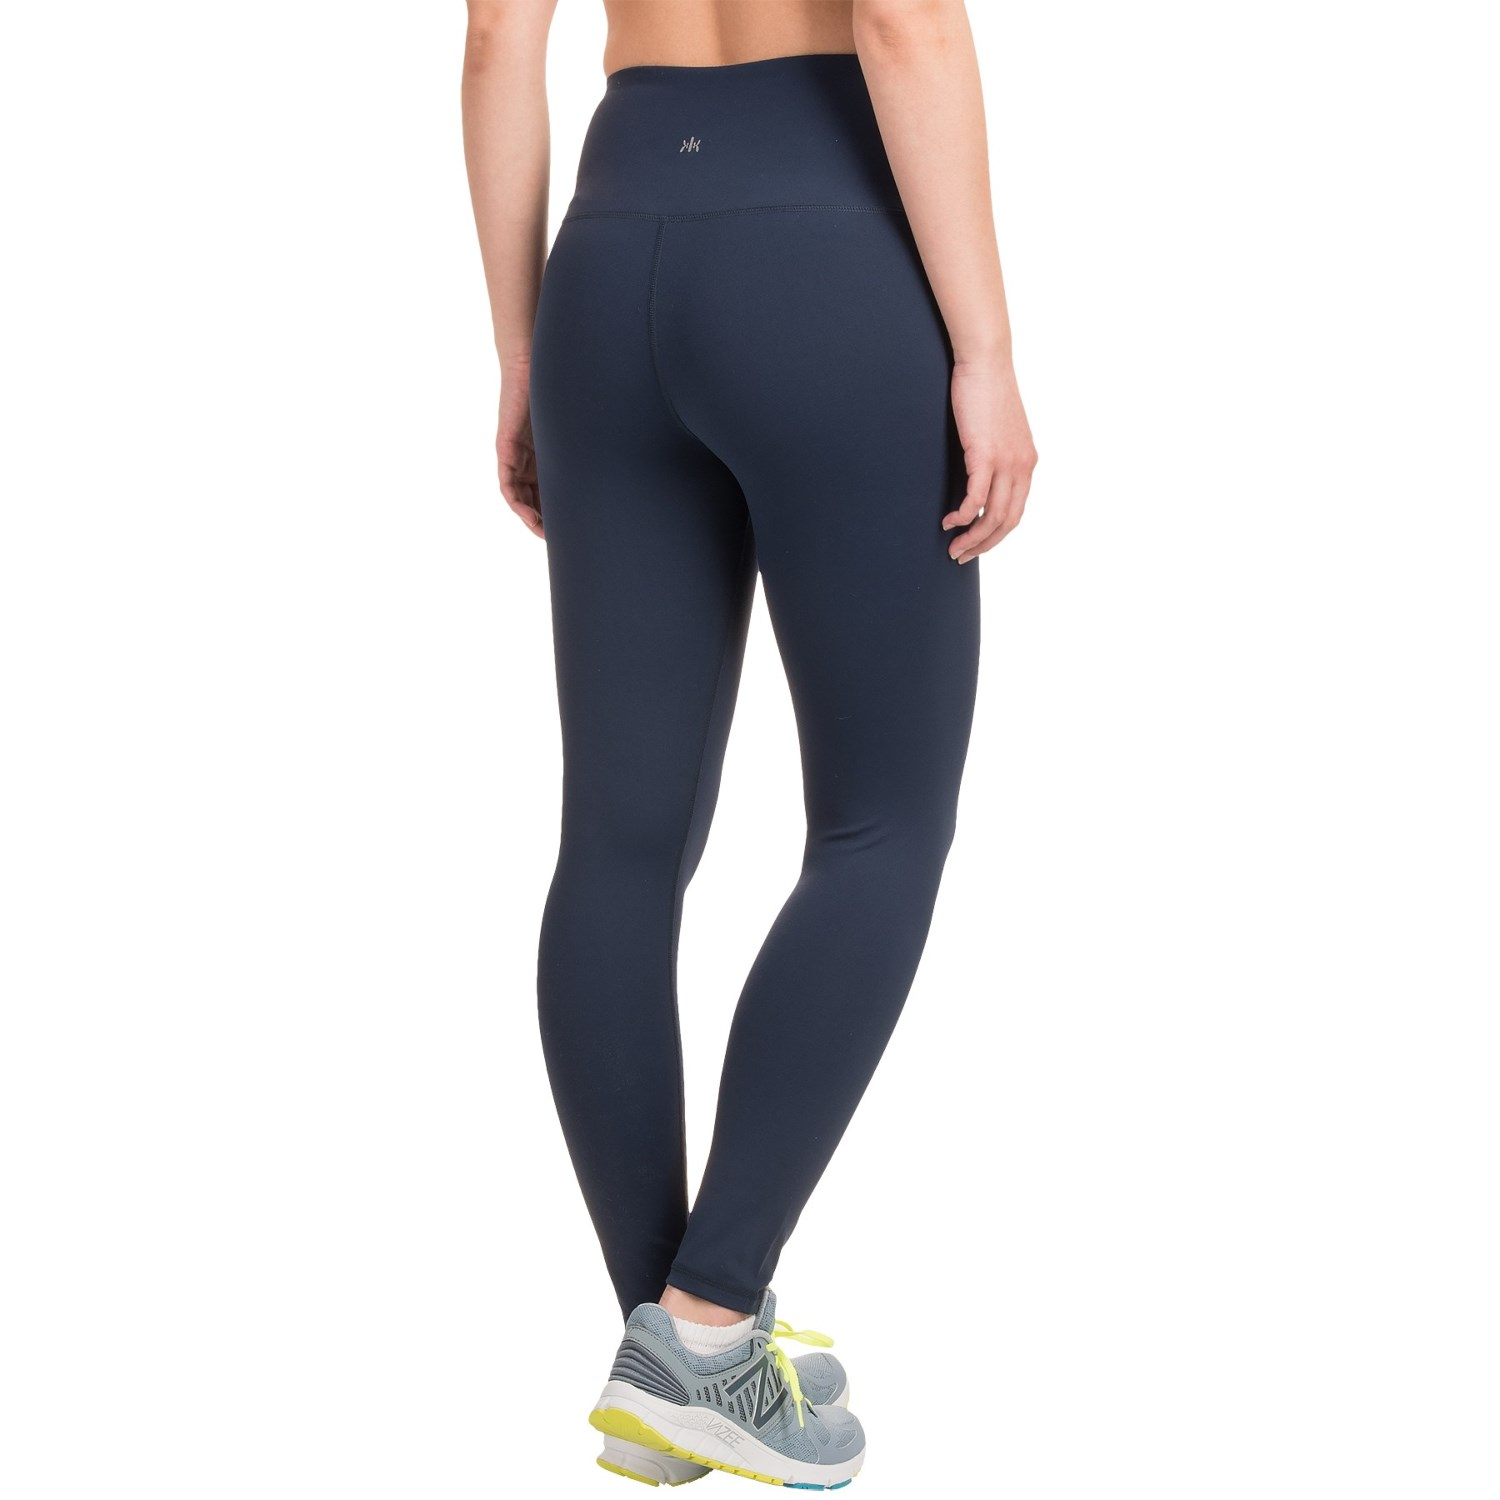 Kyodan High-Waisted Leggings (For Women) - Save 50%